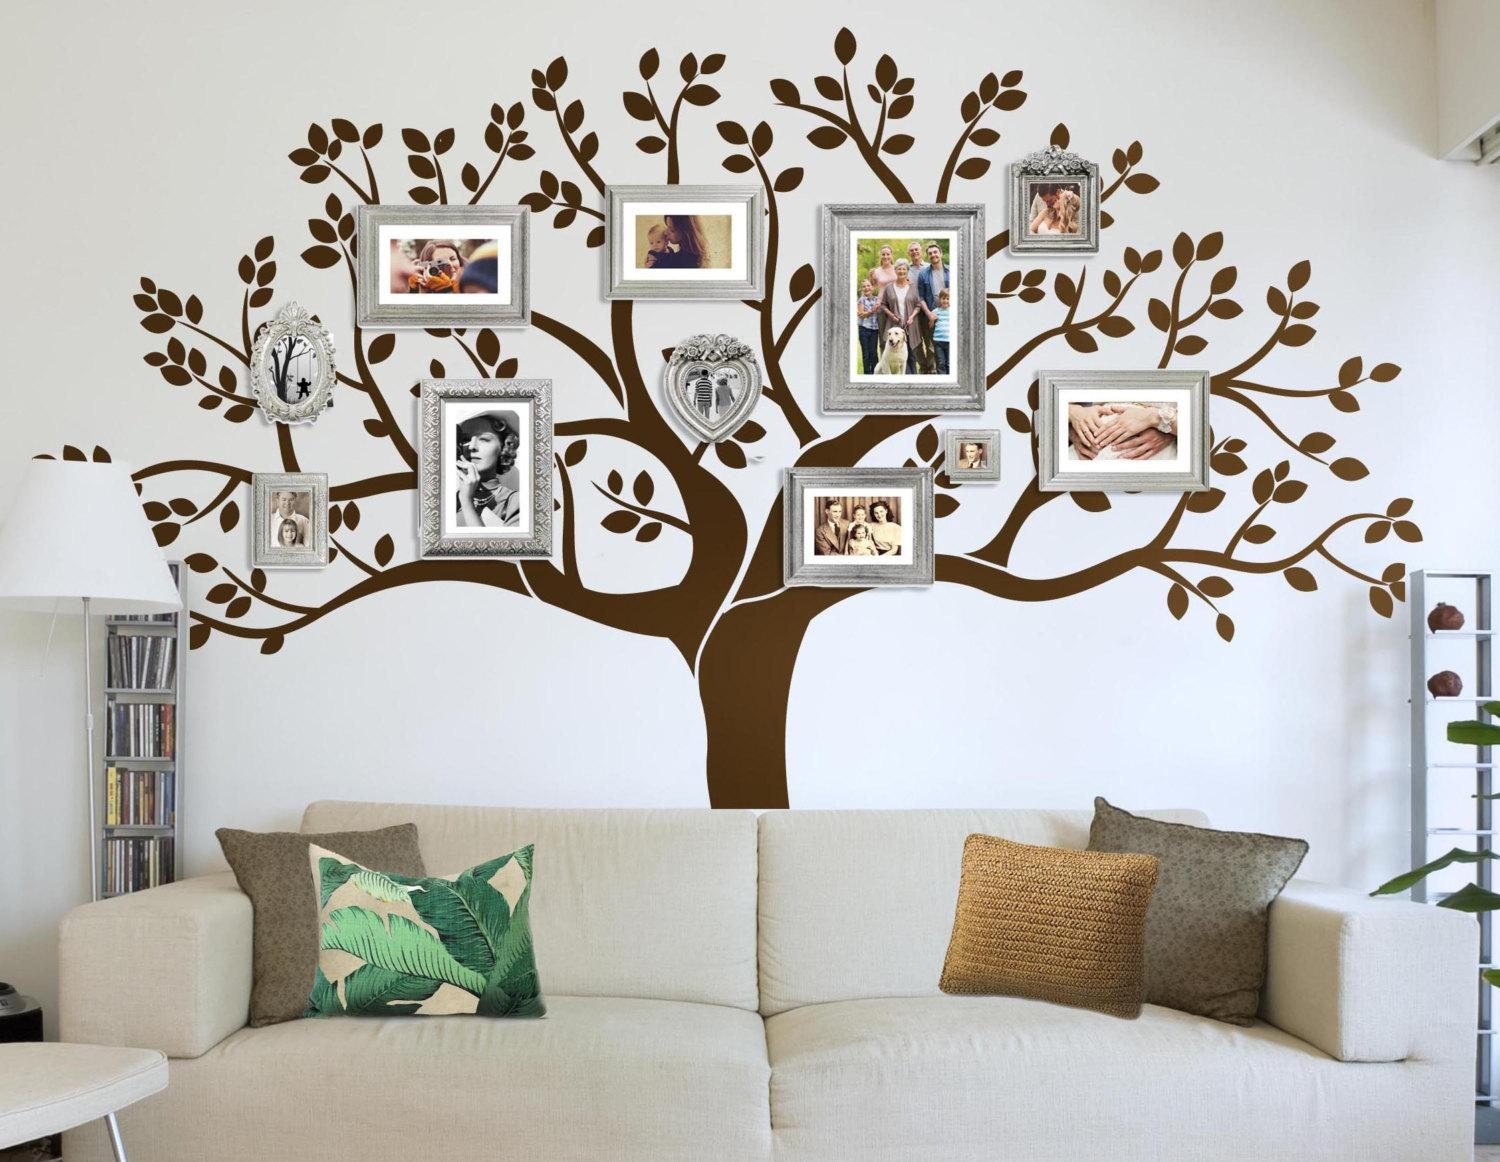 Photo Frame Family Tree Decal Wall Decals Wall Decor Inside Family Wall Art Picture Frames (Image 13 of 20)